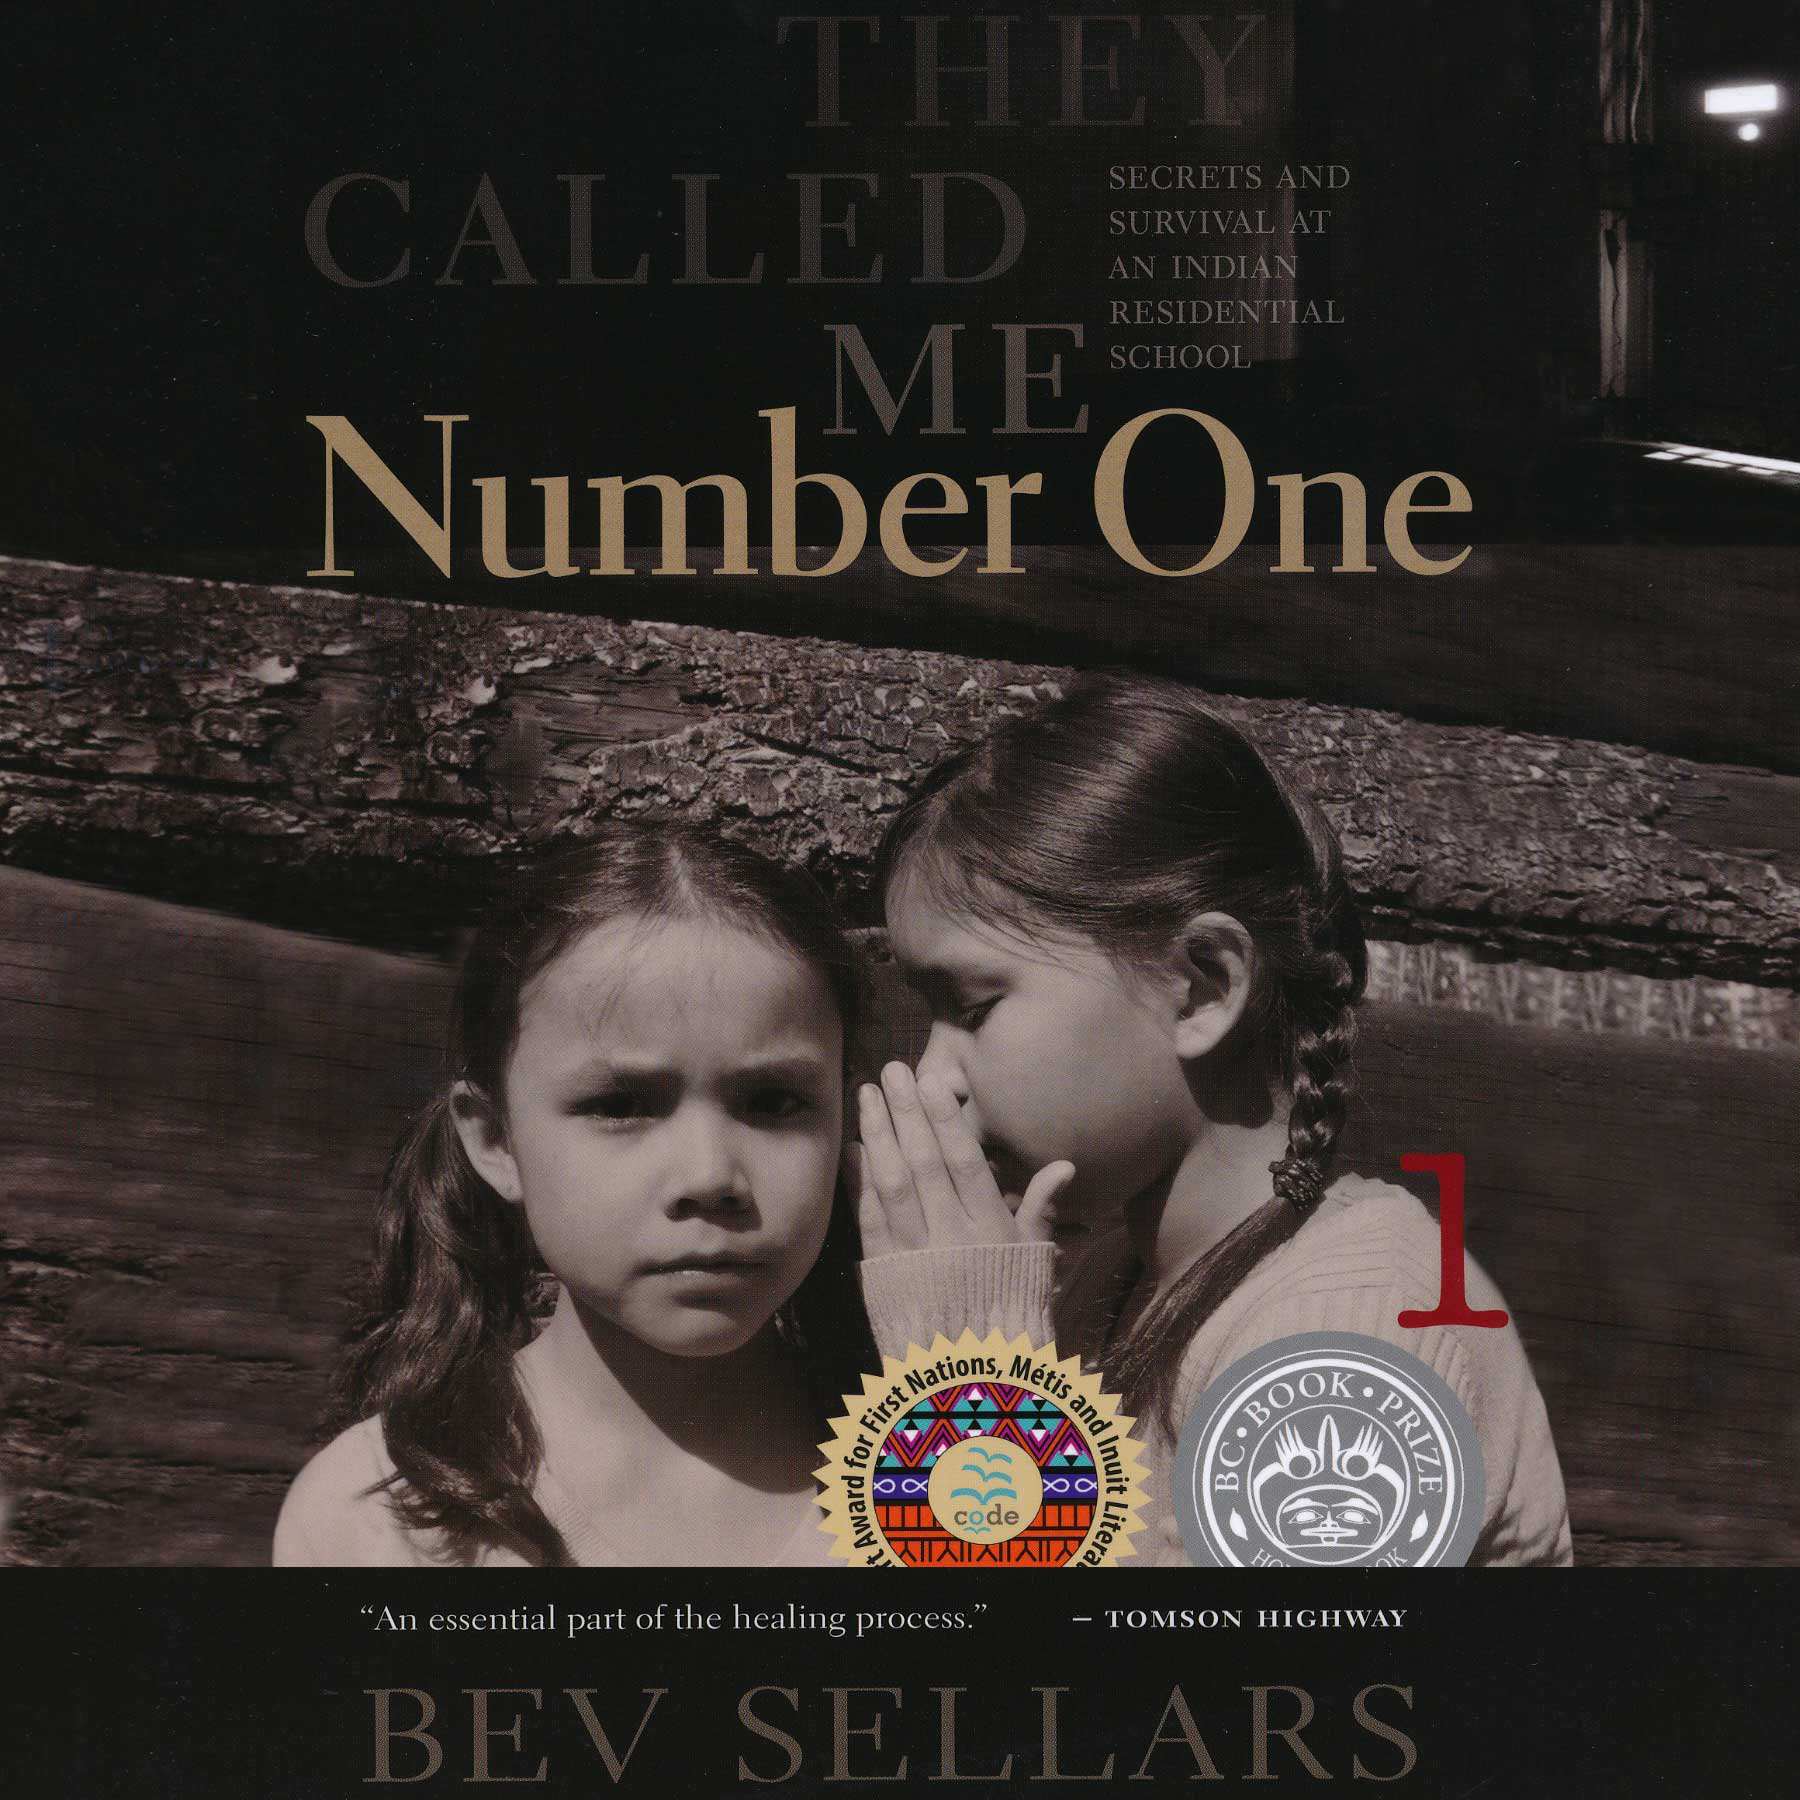 They Called Me Number One  Secrets And Survival At An Indian Residential School